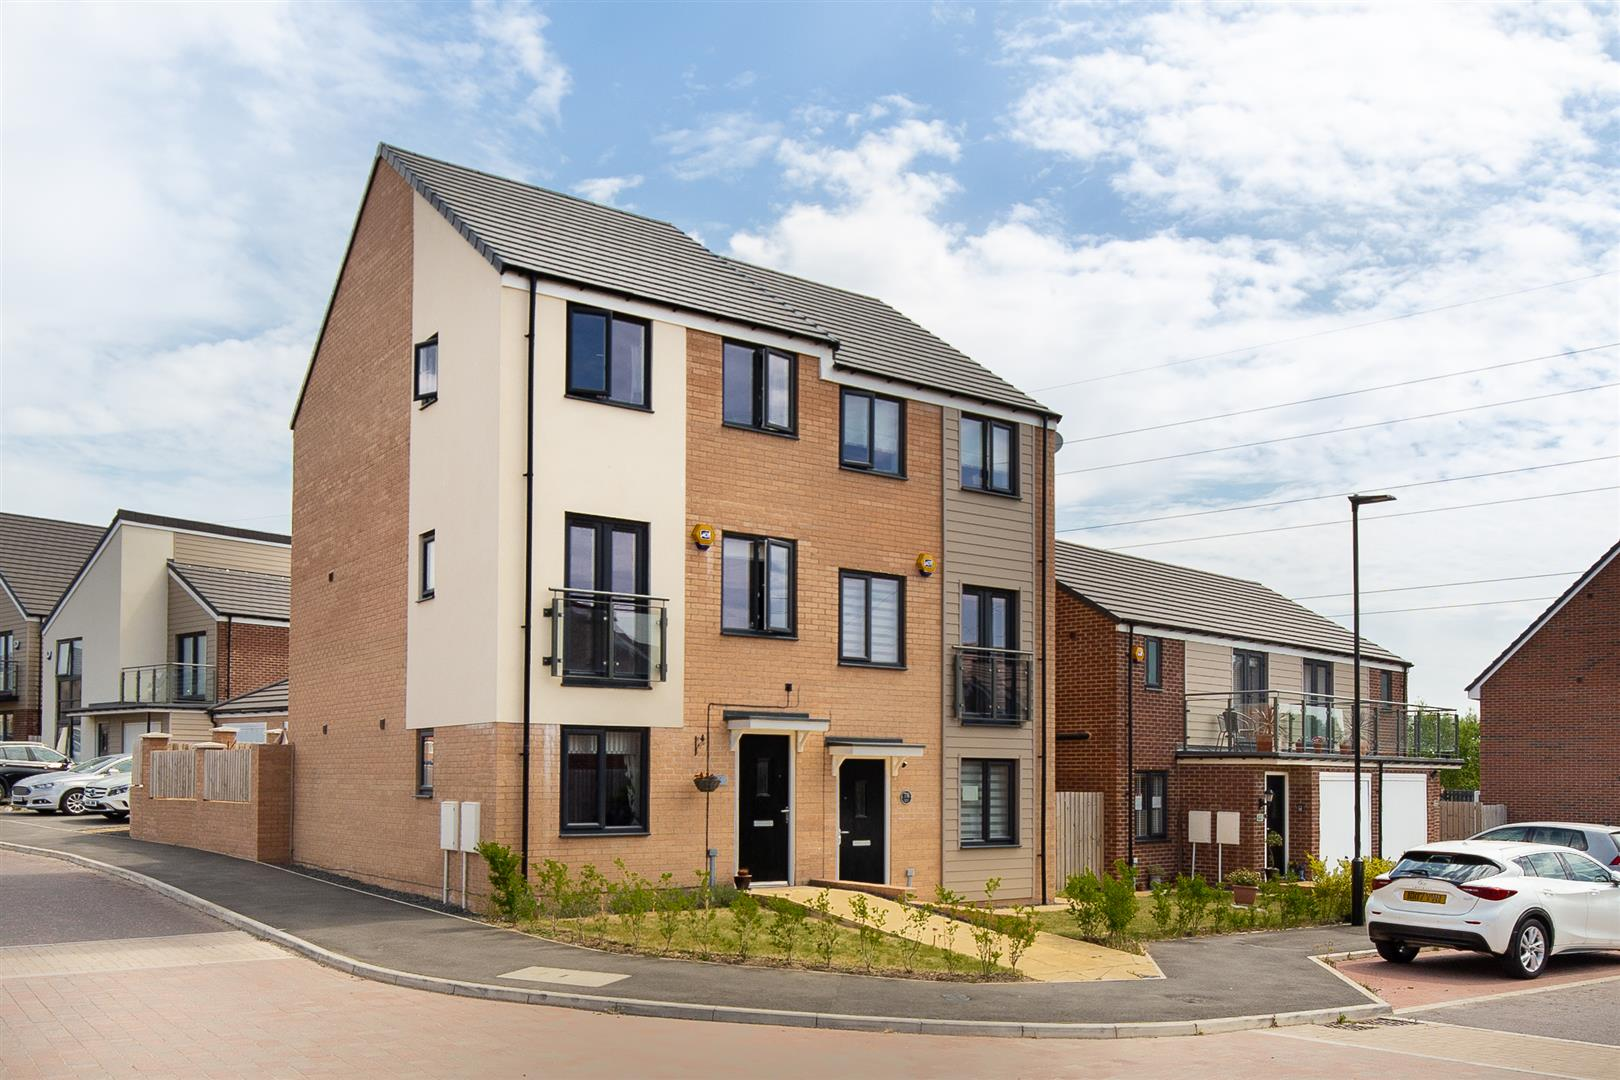 3 bed town house for sale in Newcastle Upon Tyne, NE13 9DW, NE13